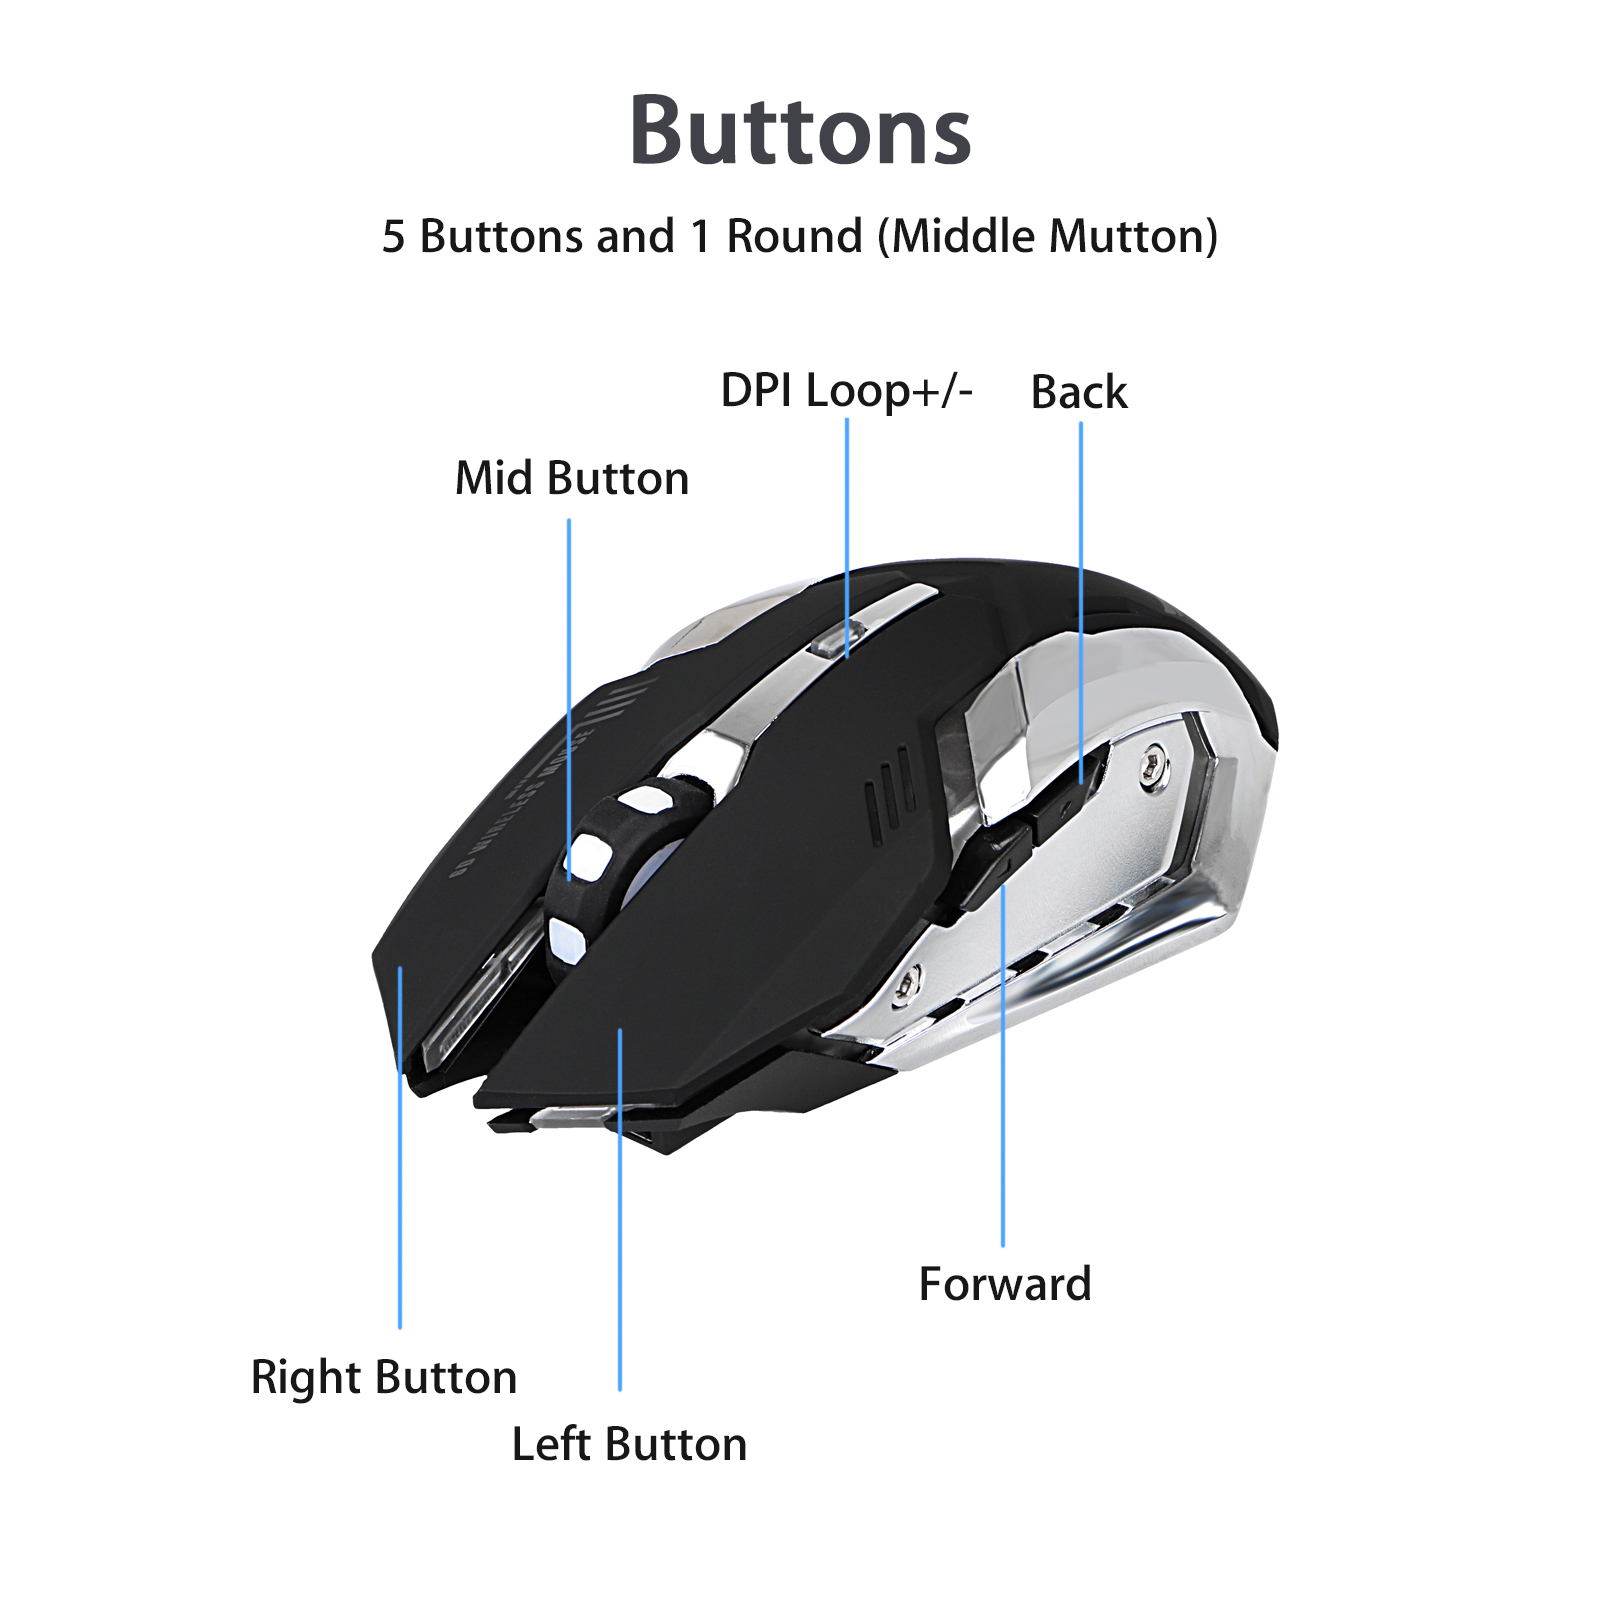 X70 Wireless Gaming Mouse Tsv 800 2400dpi With 5 Buttons 7 Color Diagram Led Backlit Rechargeable Usb Optical Mice